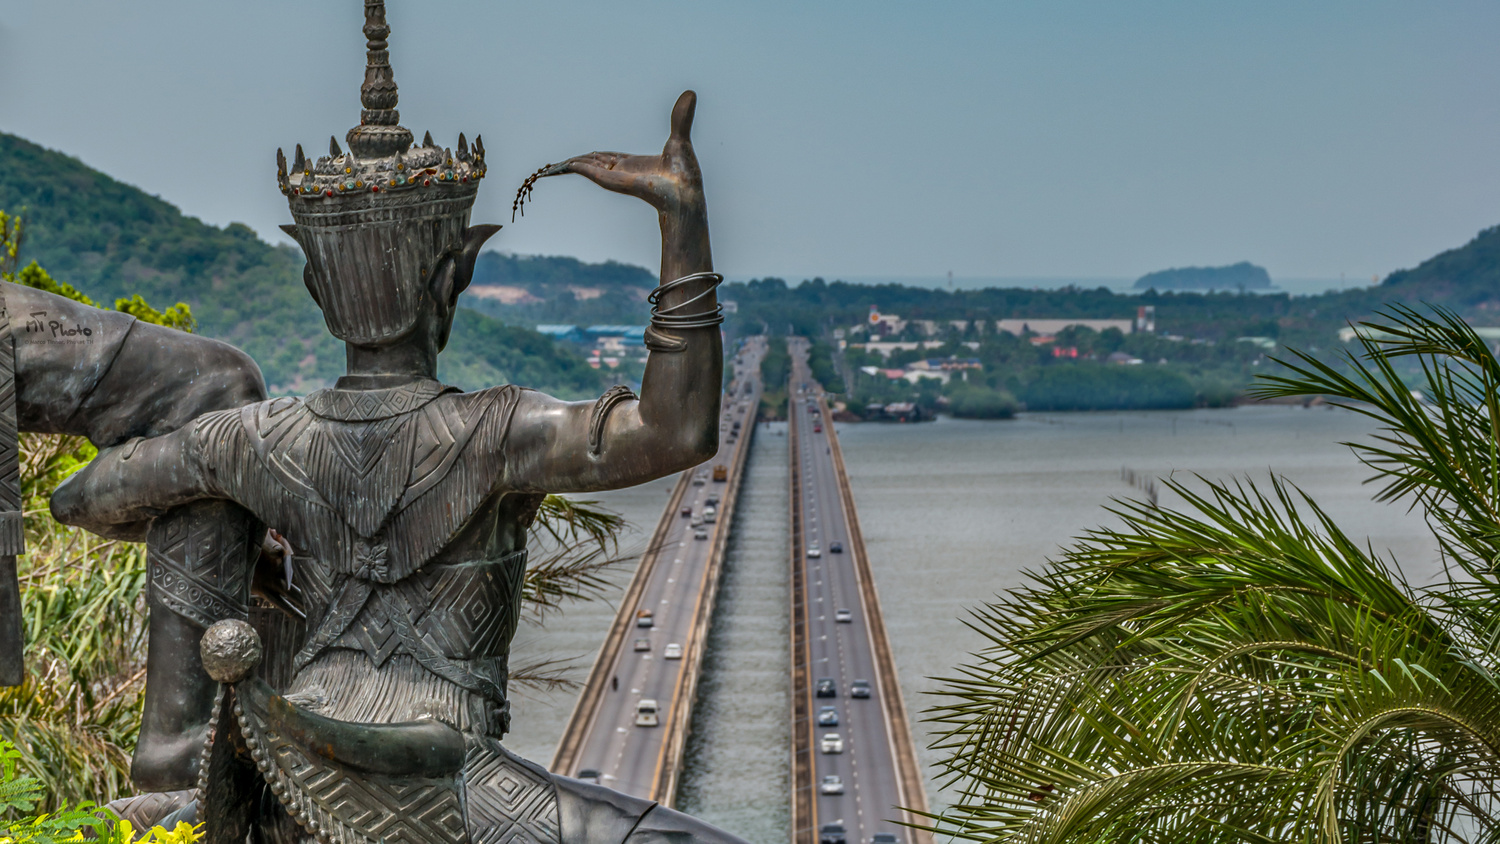 Folklore Statue protecting Bridge by Marco Tinner